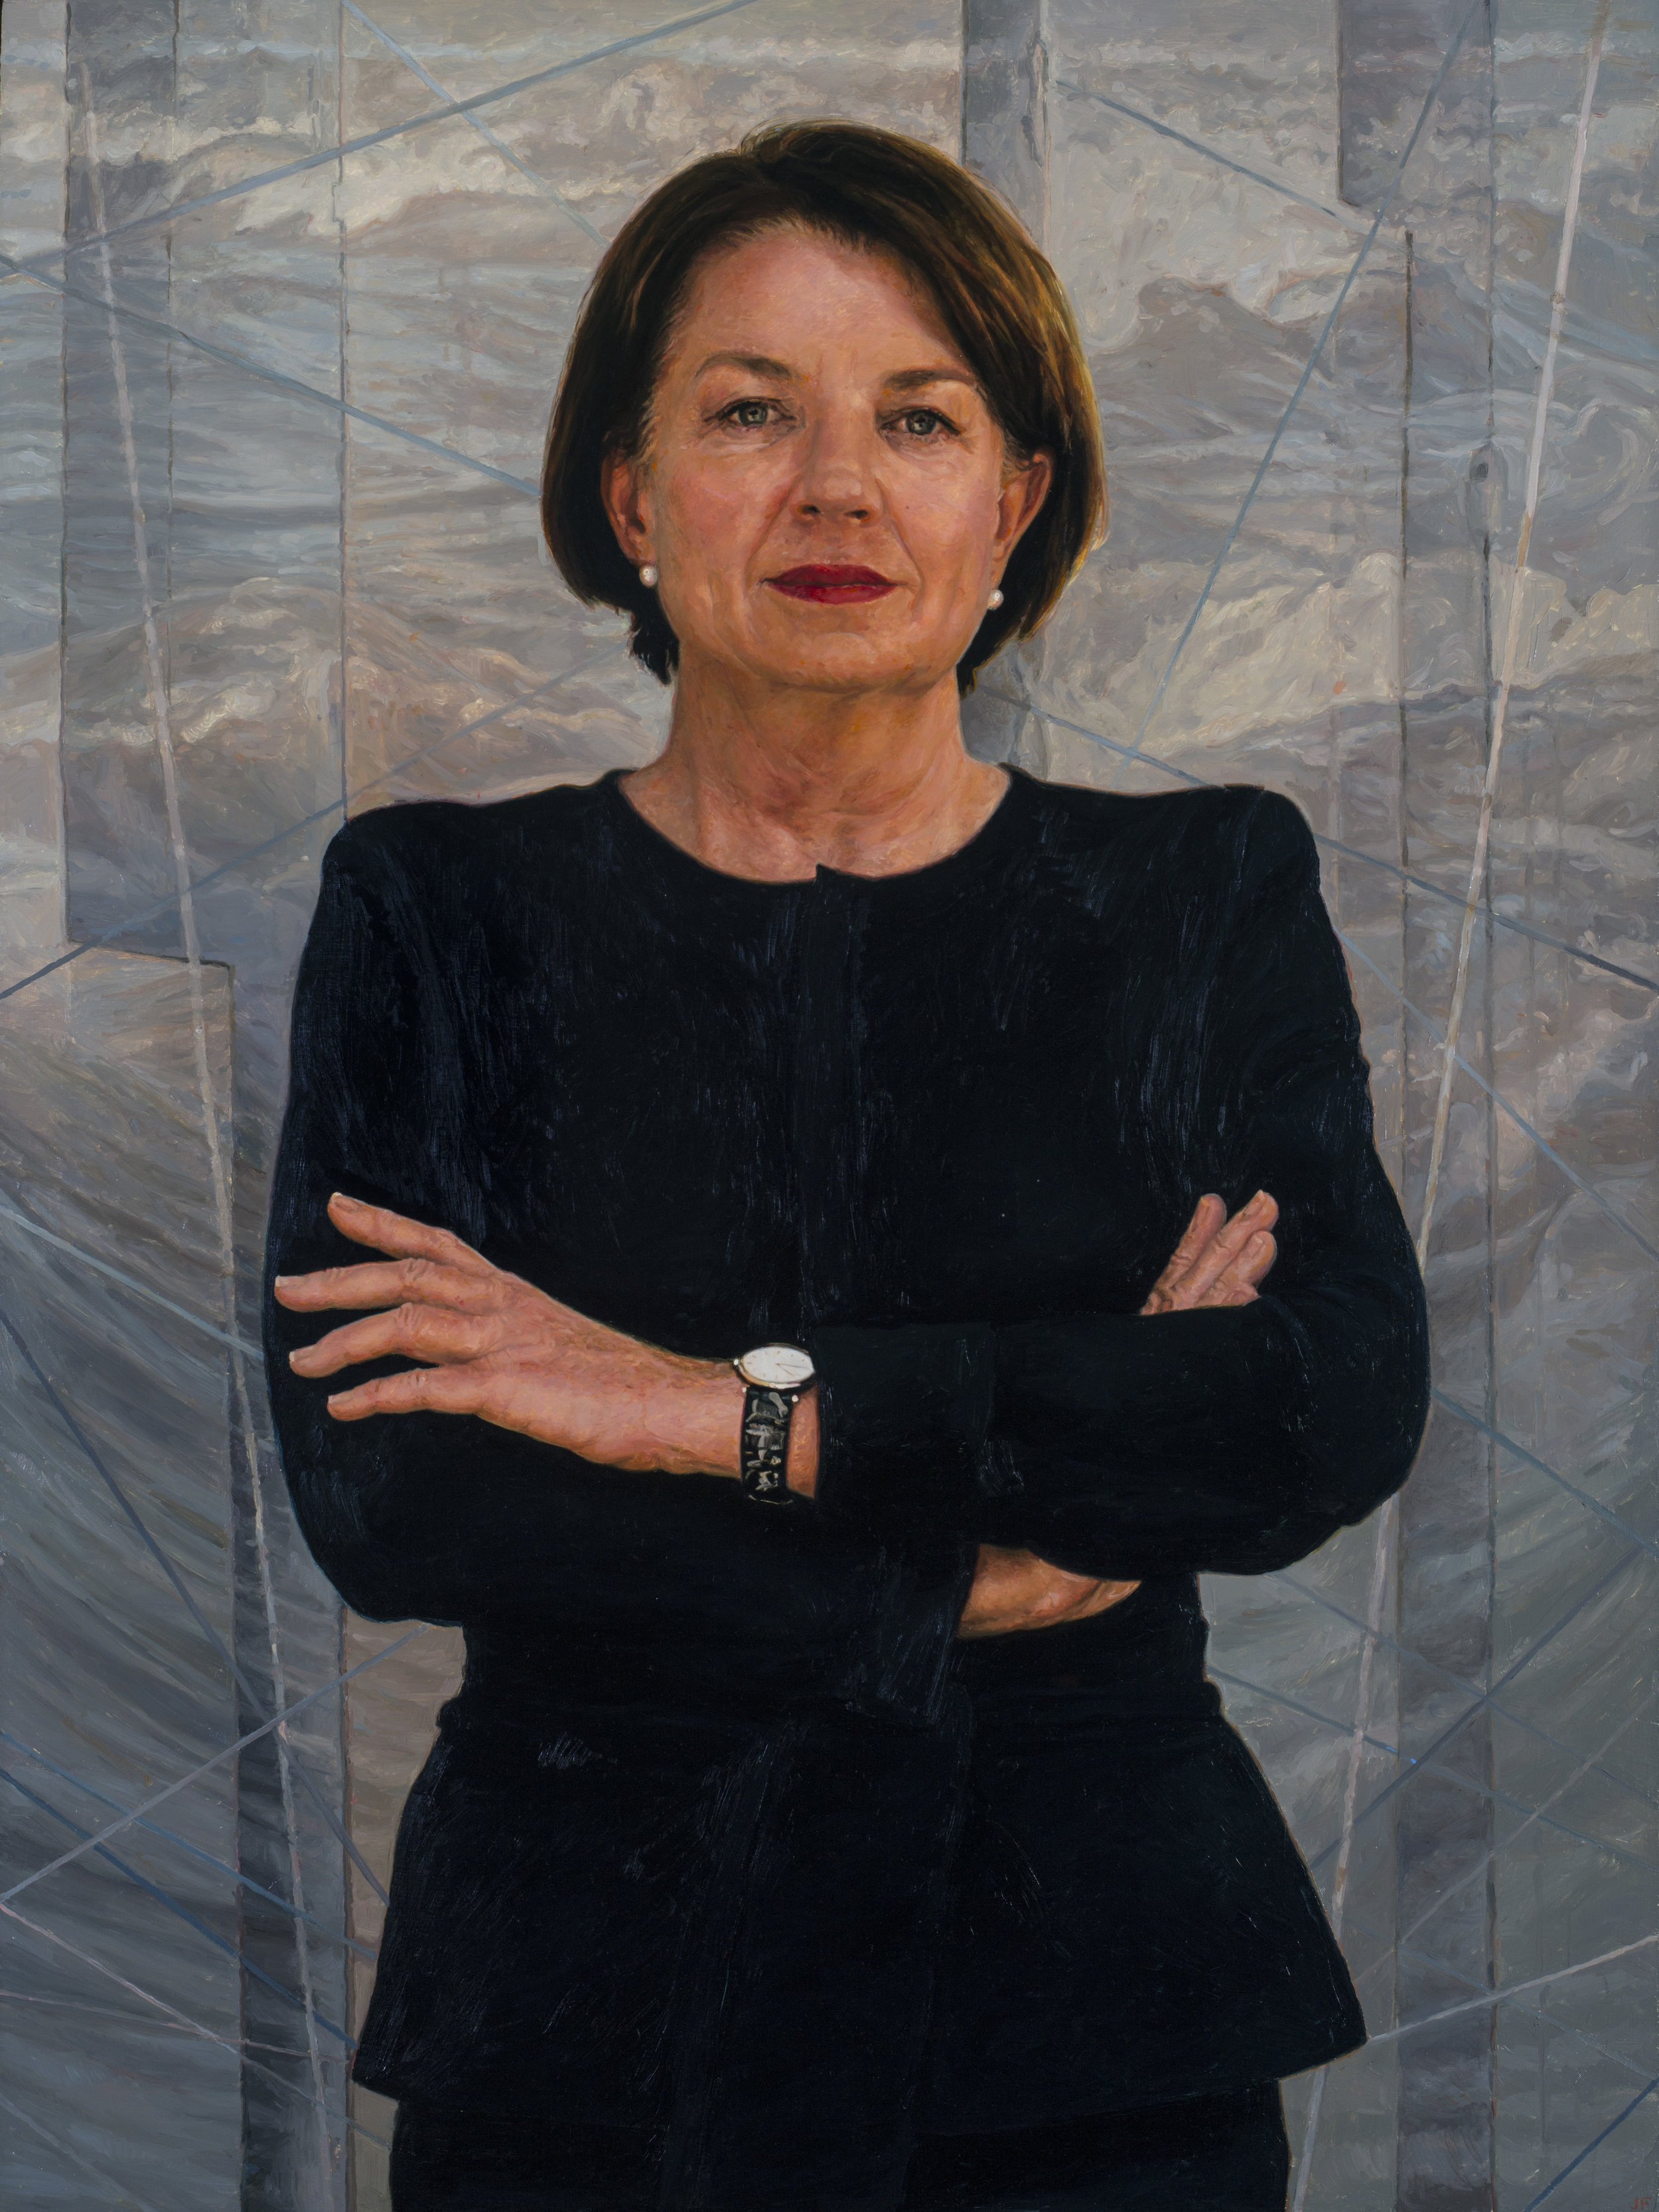 Portrait of Queensland State Premier Anna Bligh